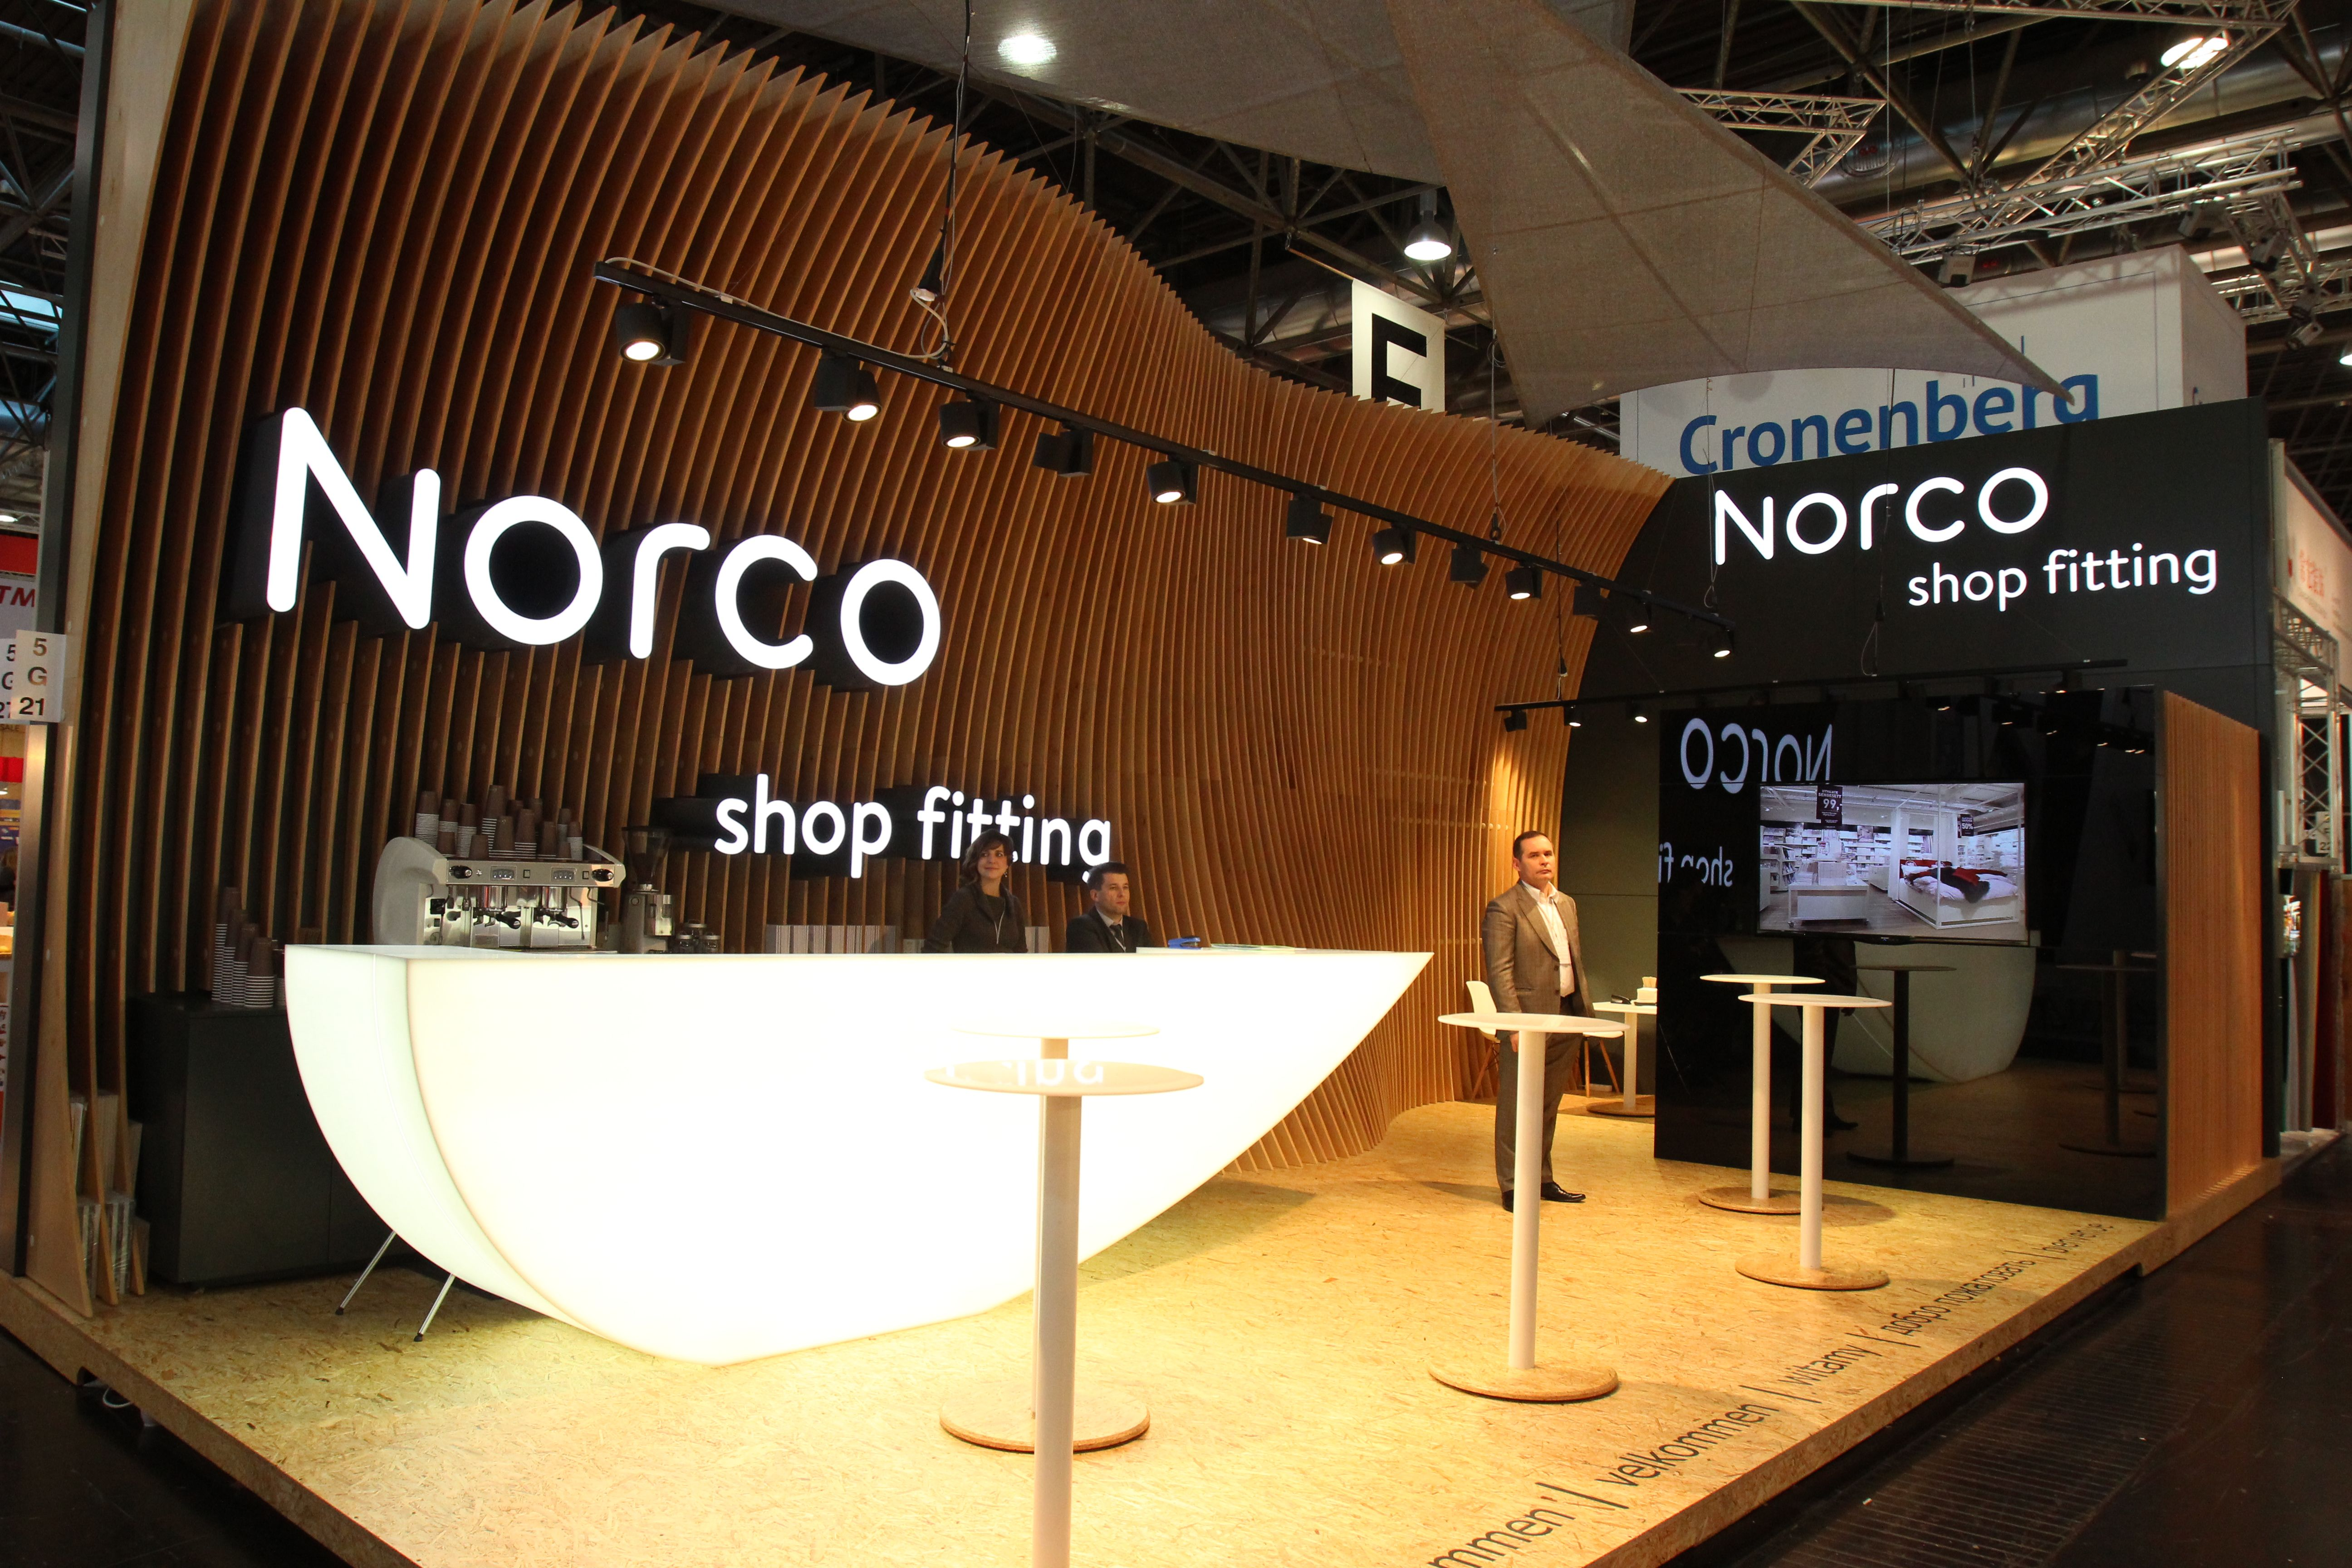 Exhibition Stand Fittings : Norco shop fitting at euroshop exhibition stands